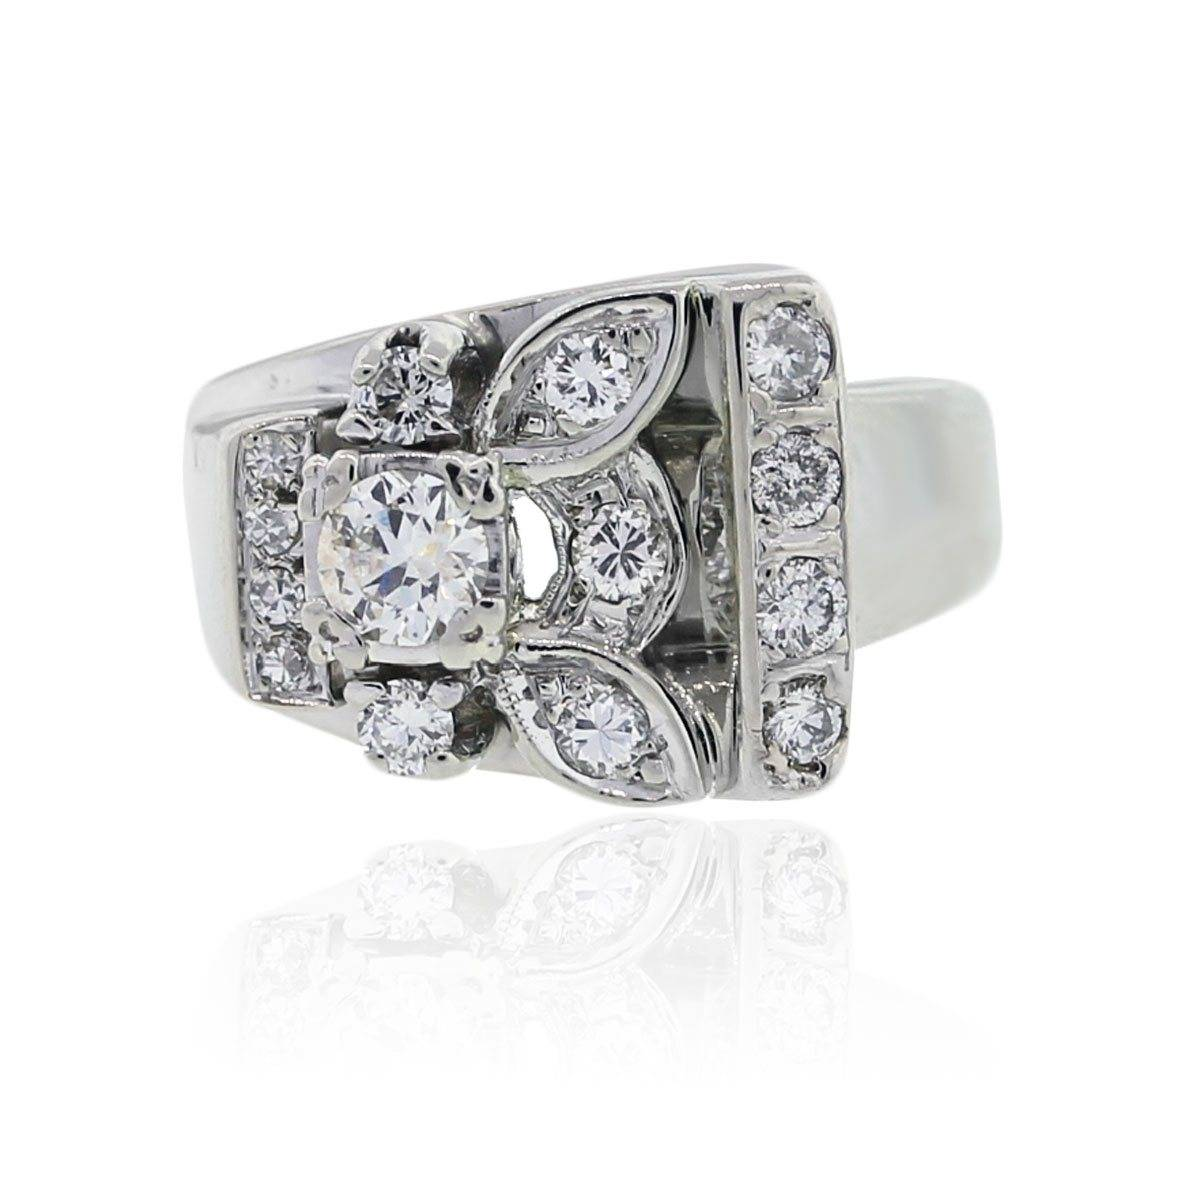 This funky vintage diamond ring is a beautiful example of estate jewelry